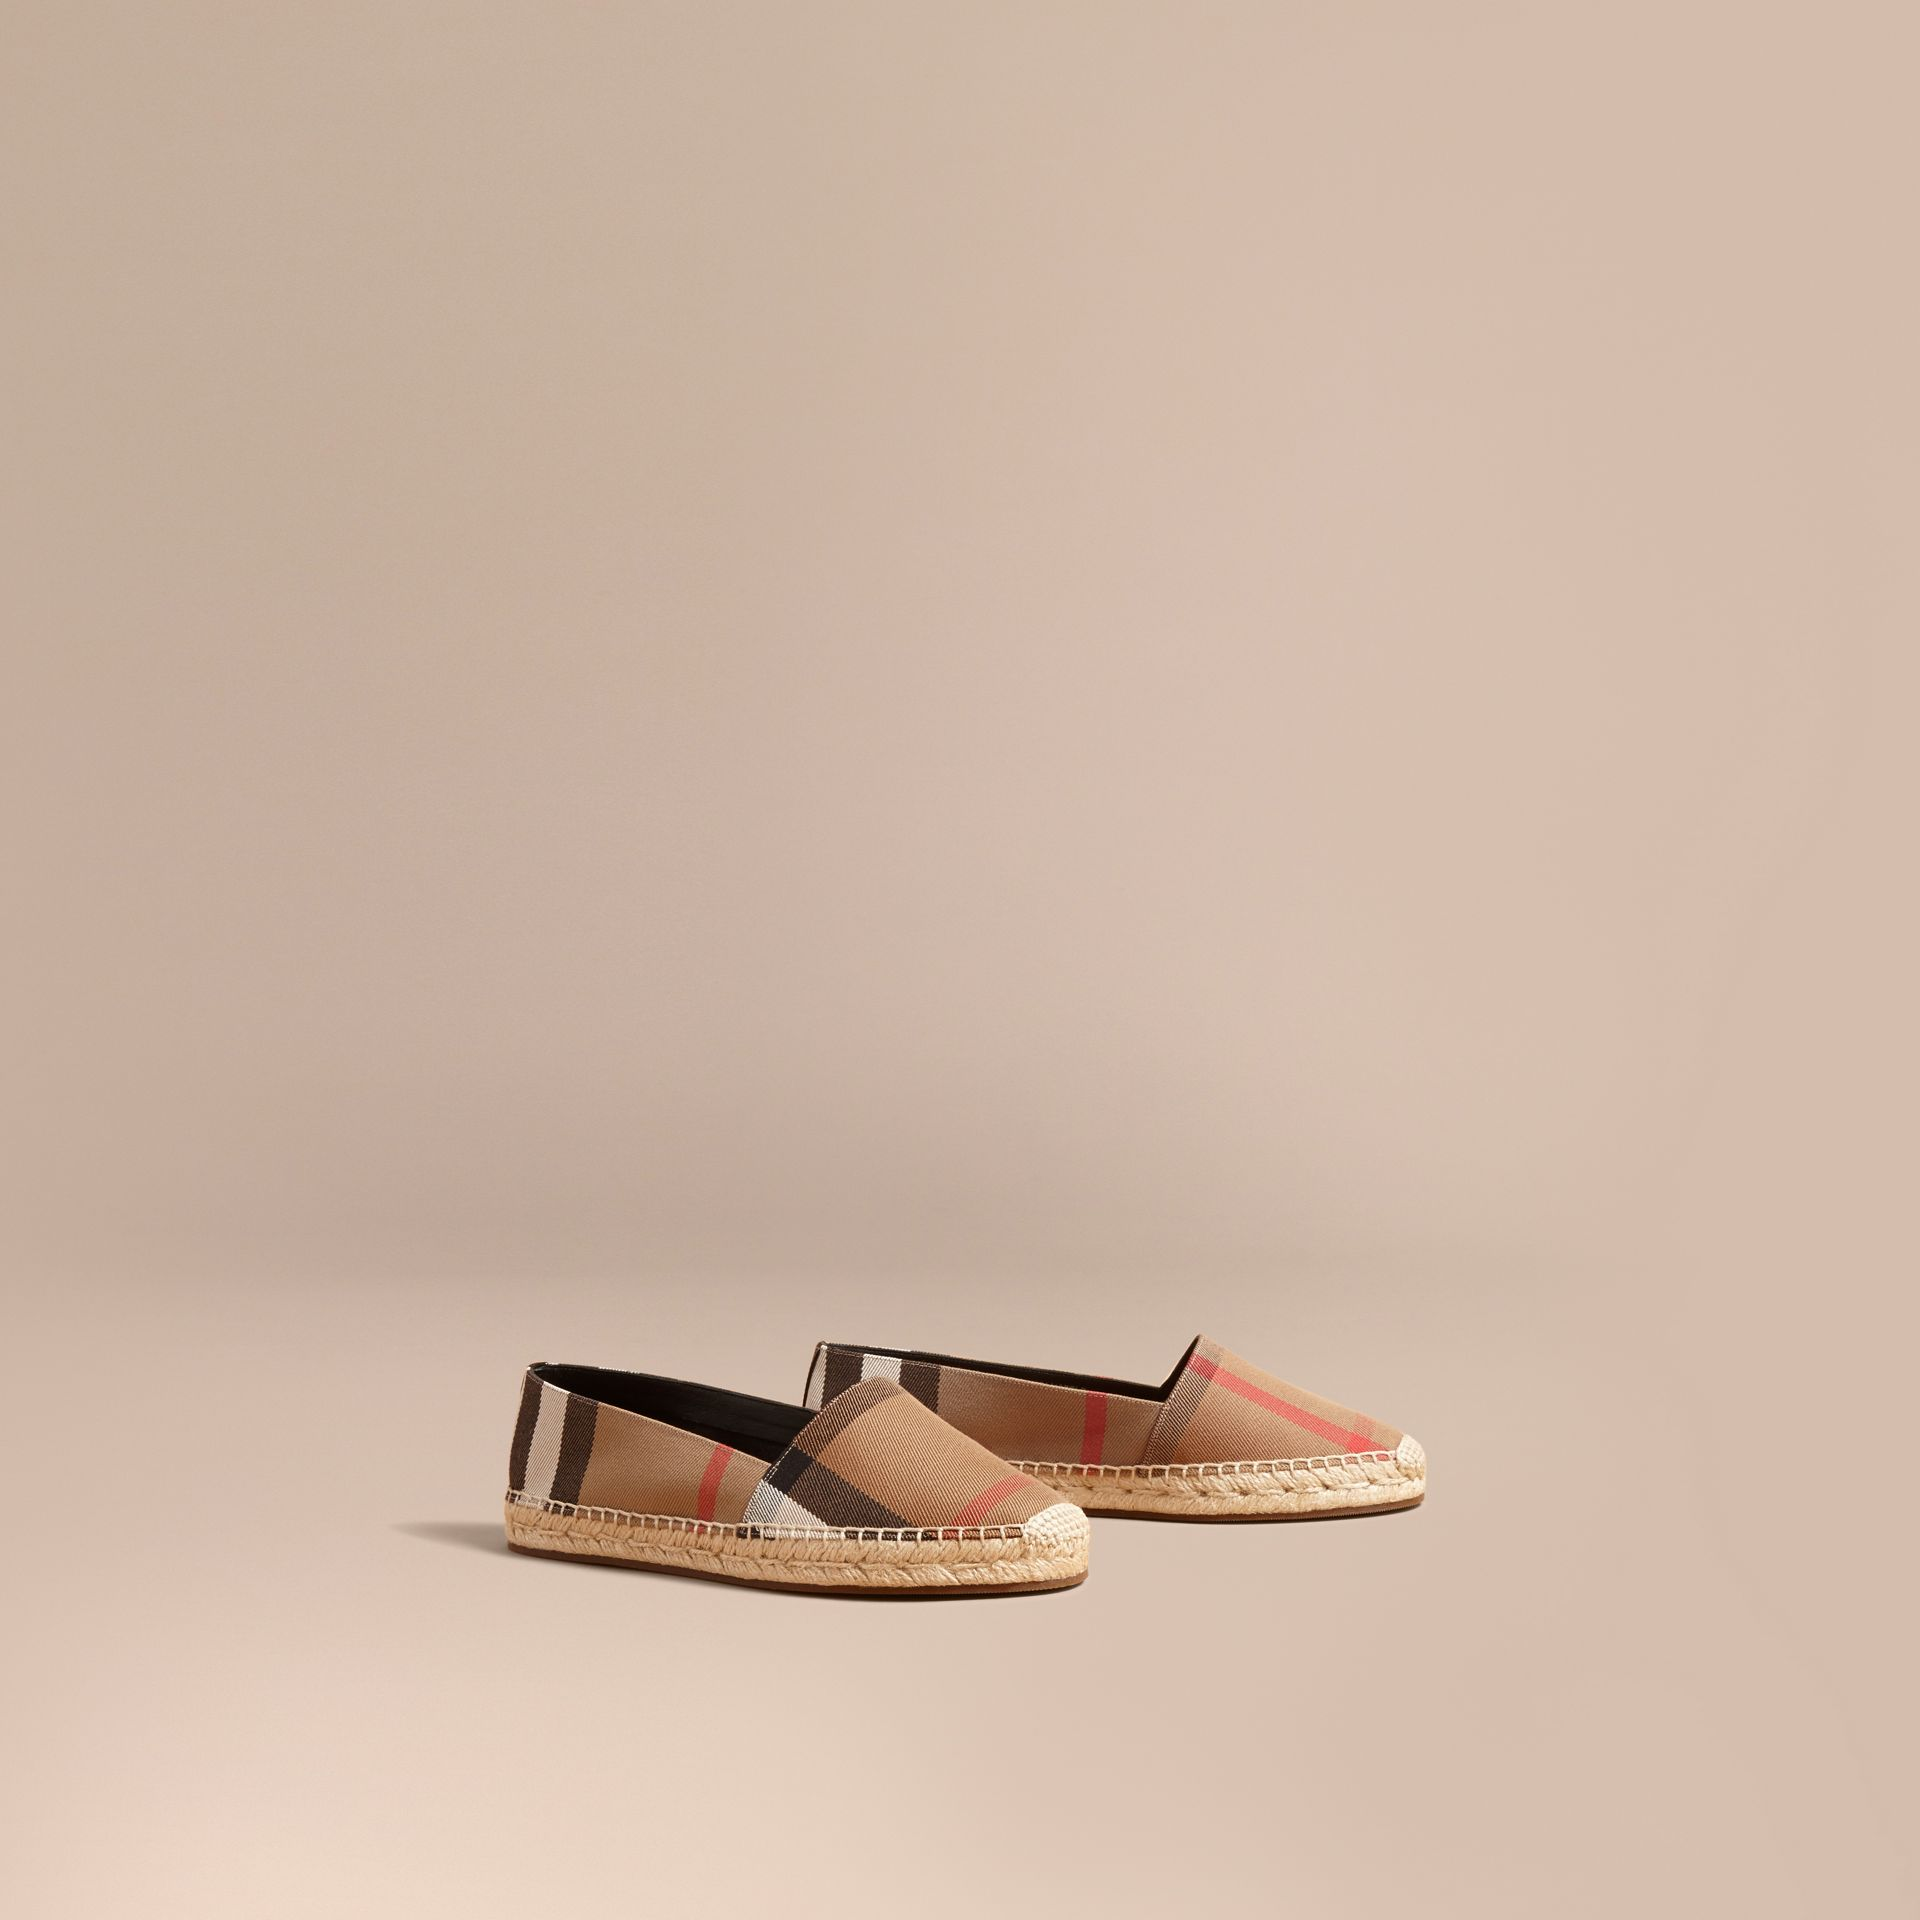 Leather Trim Canvas Check Espadrilles in Classic - Women | Burberry United Kingdom - gallery image 1